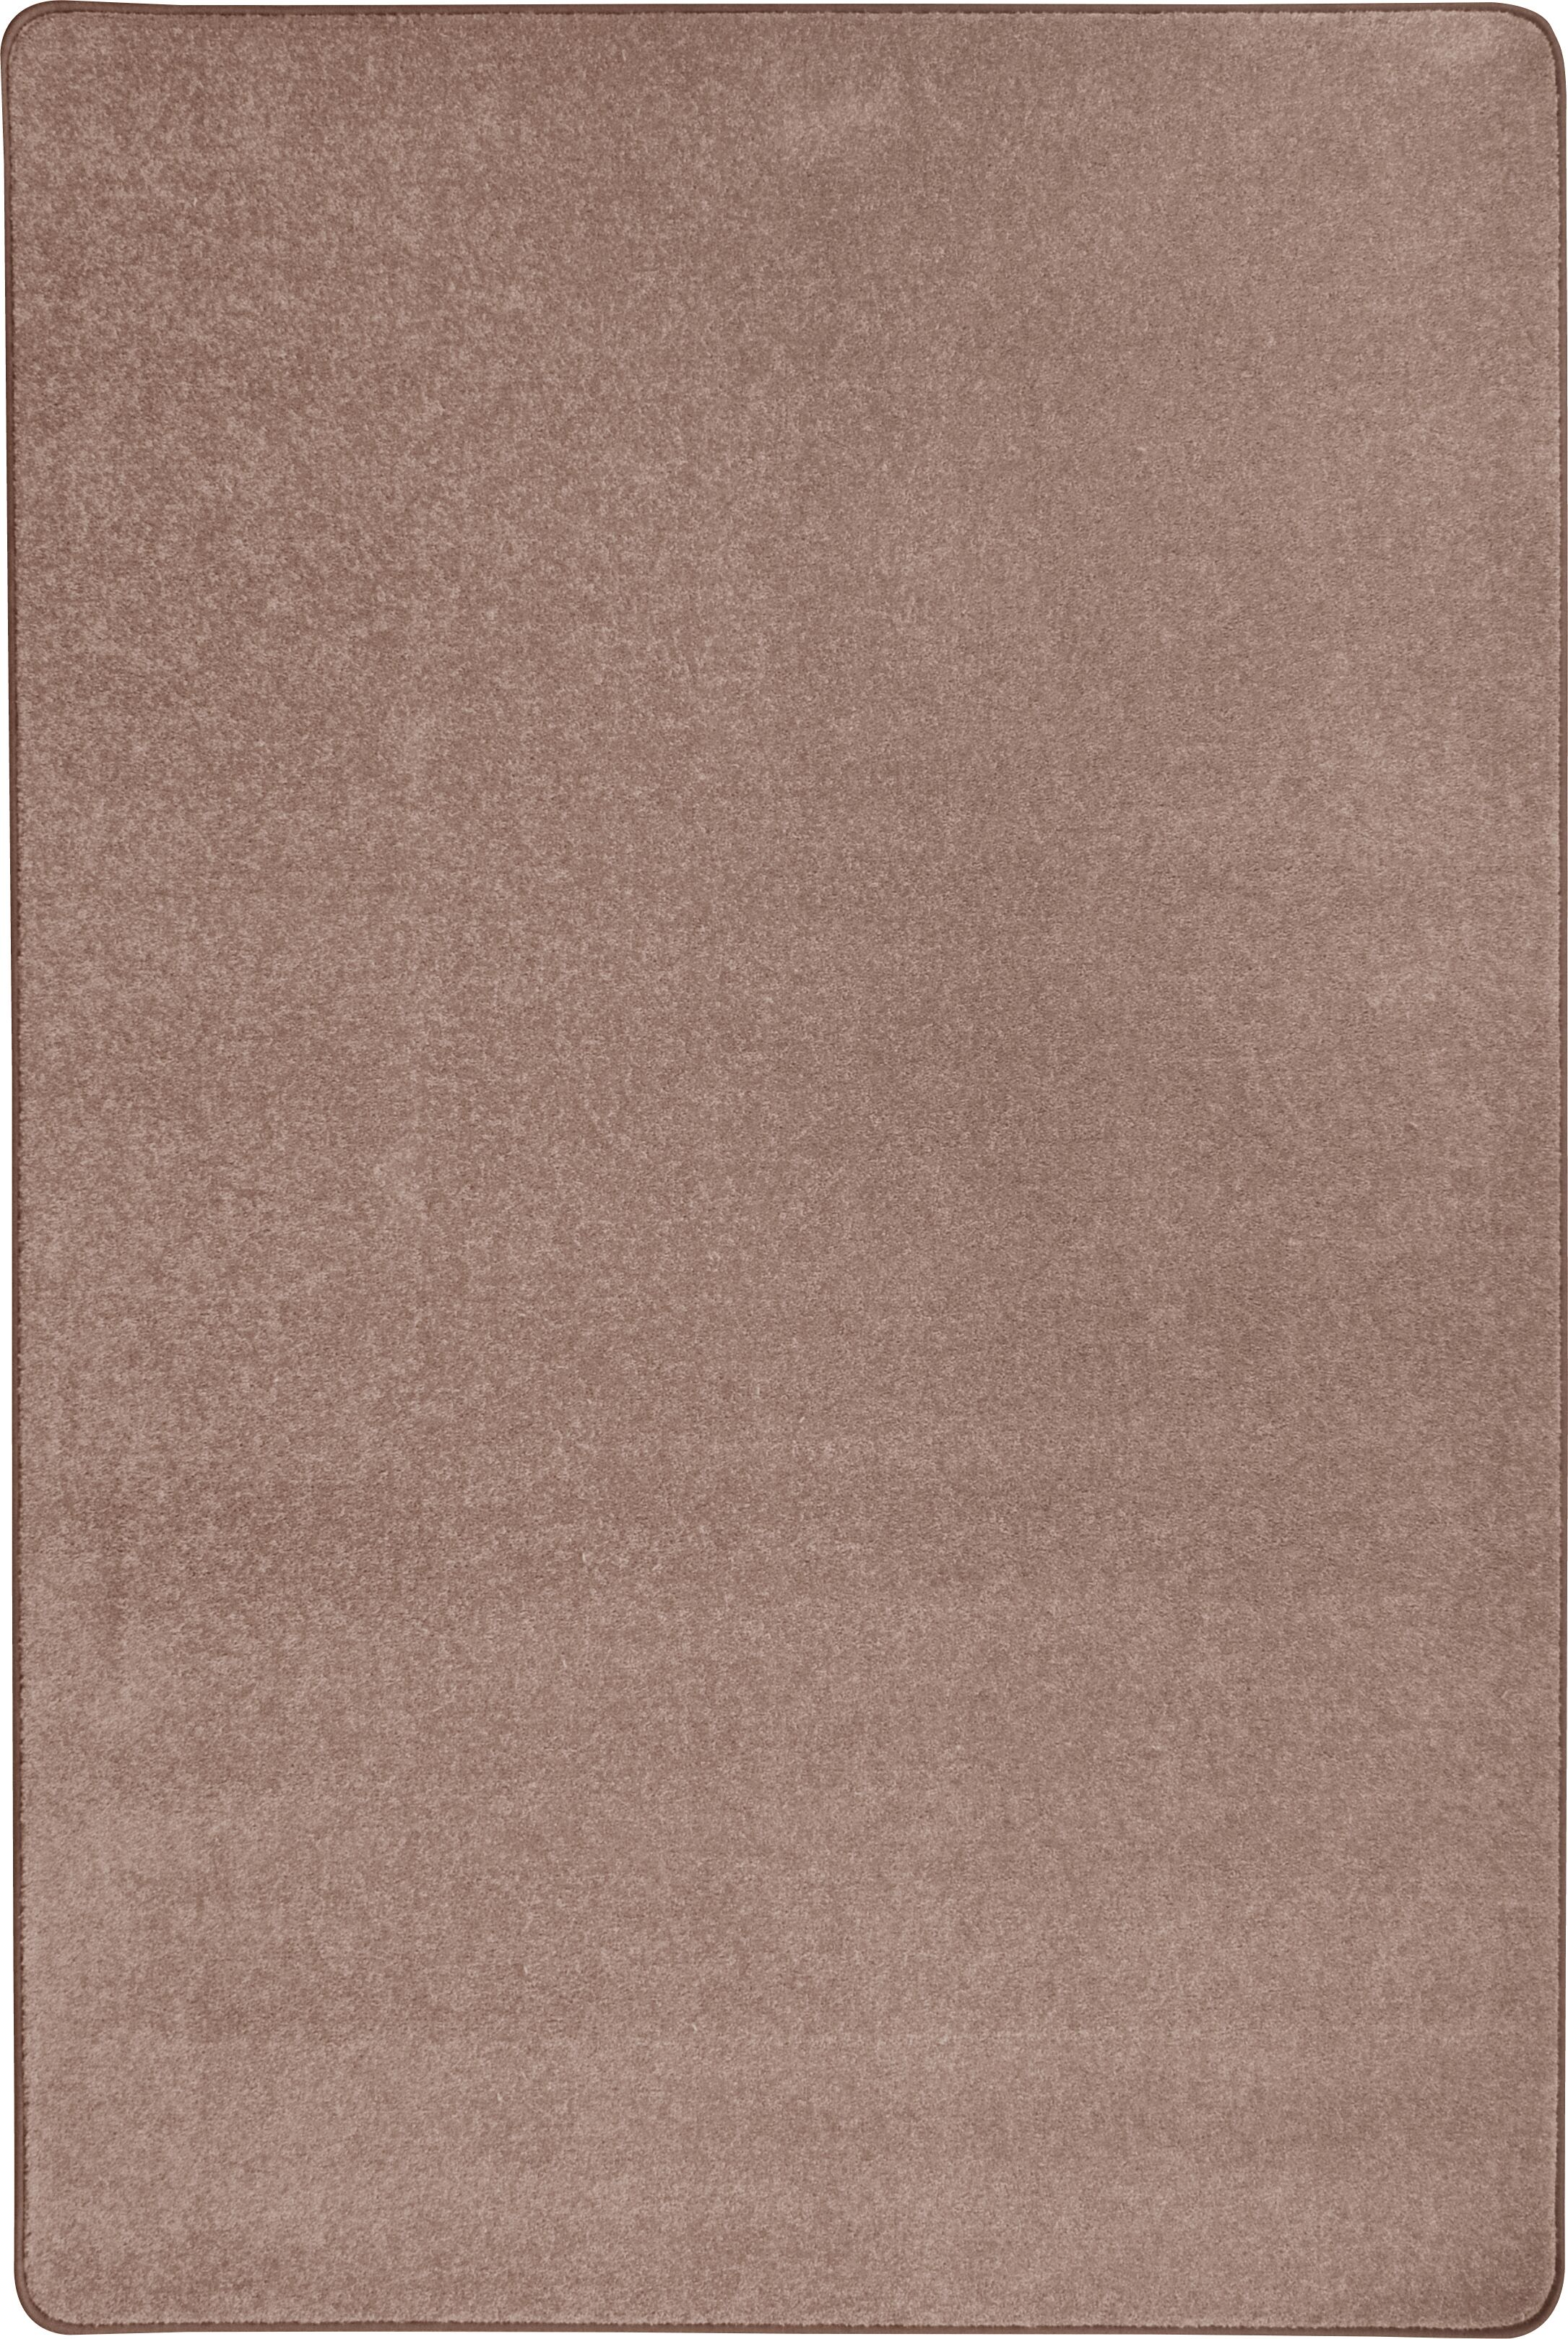 Taupe Area Rug Rug Size: Rectangle 12' x 12'